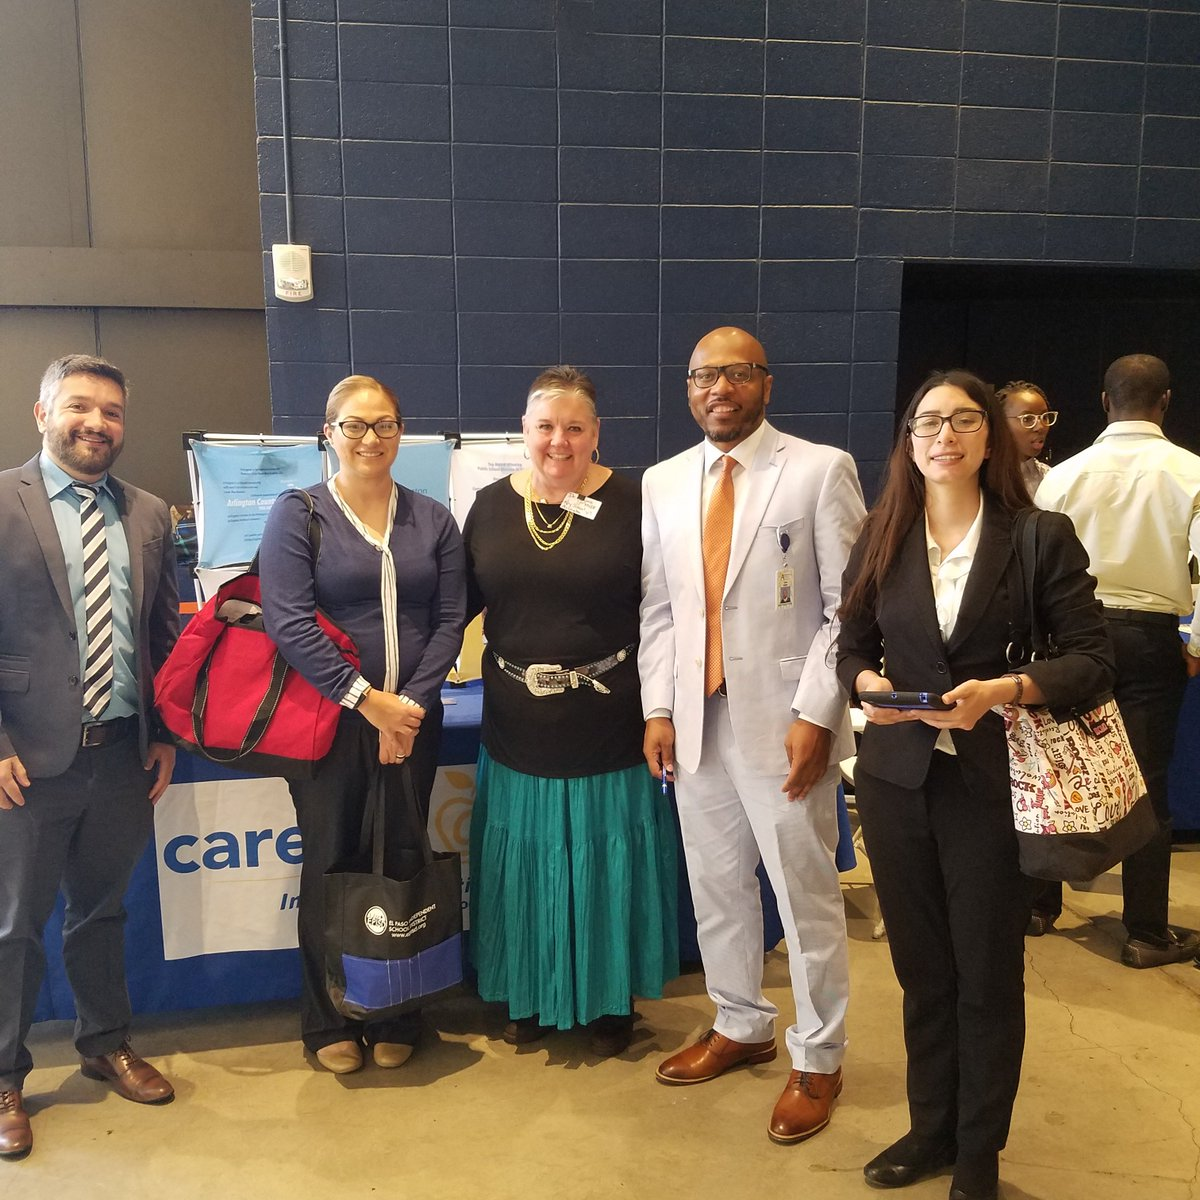 Marjorie, Carlos and Corey recruiting at The University of Texas at El Paso. <a target='_blank' href='https://t.co/7B8hvLudGD'>https://t.co/7B8hvLudGD</a>